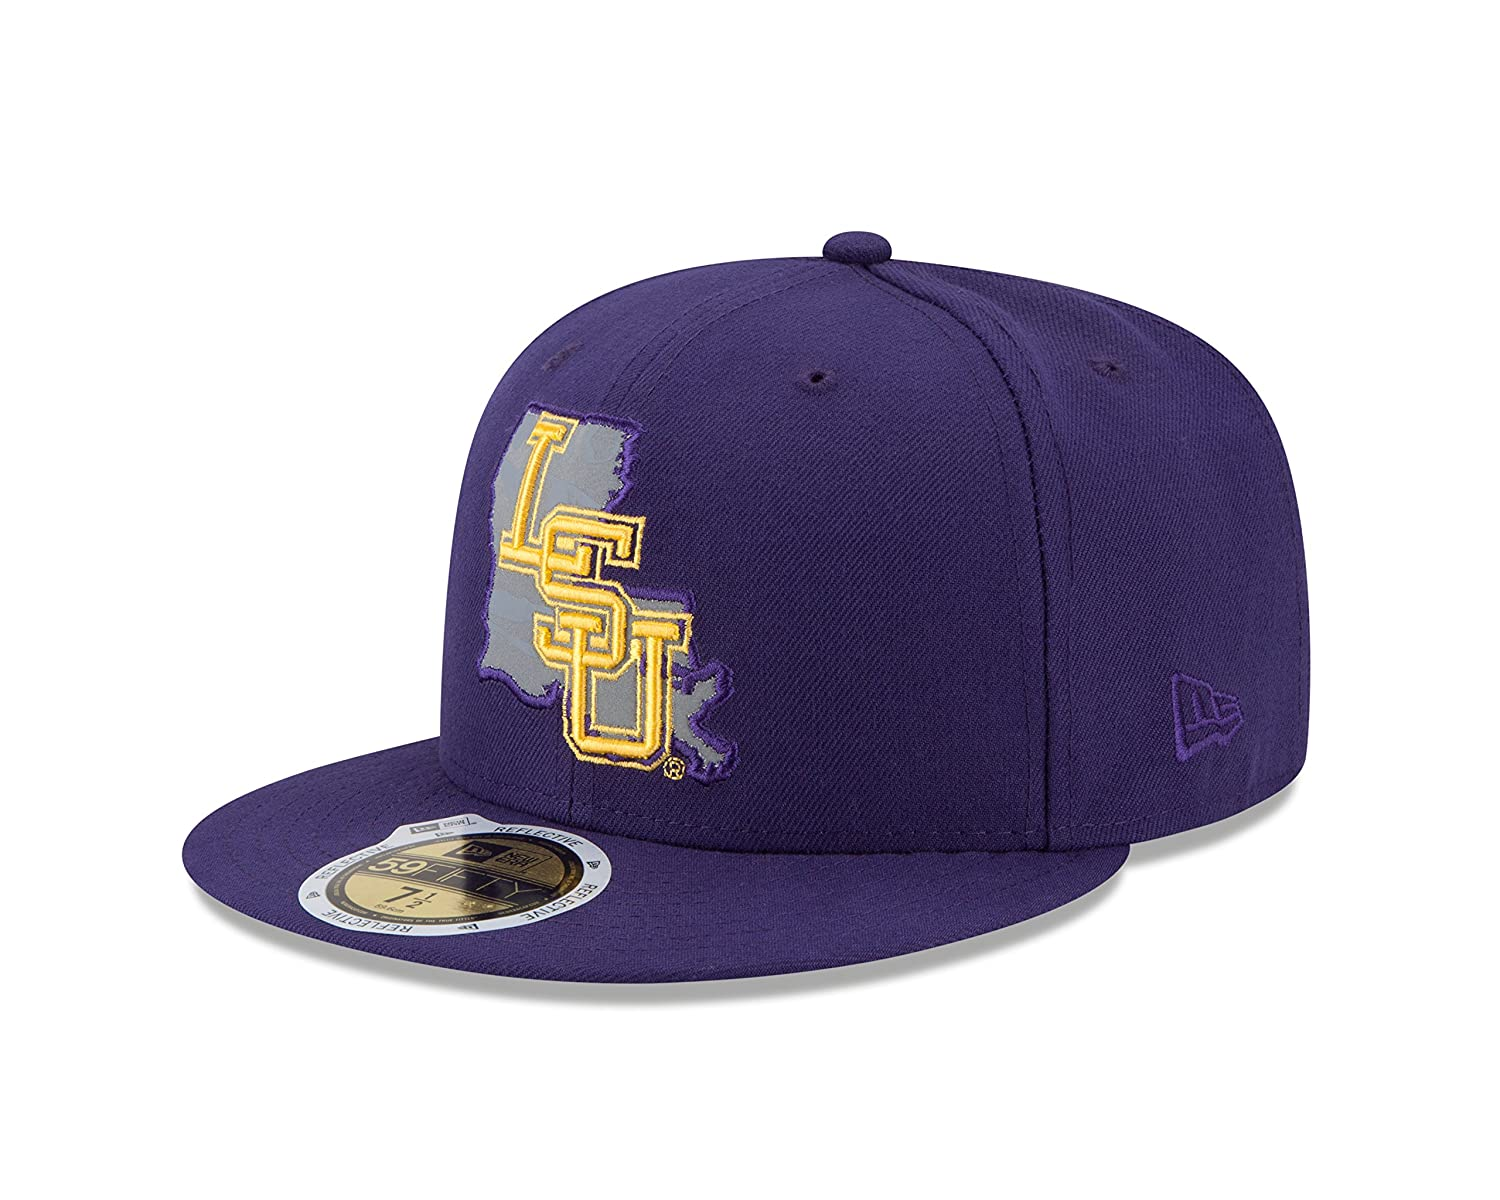 big sale 58c1b 6bf4a Amazon.com   New Era NCAA LSU Tigers State Flective Redux 59FIFTY Fitted  Cap, 7.5, Purple   Sports   Outdoors